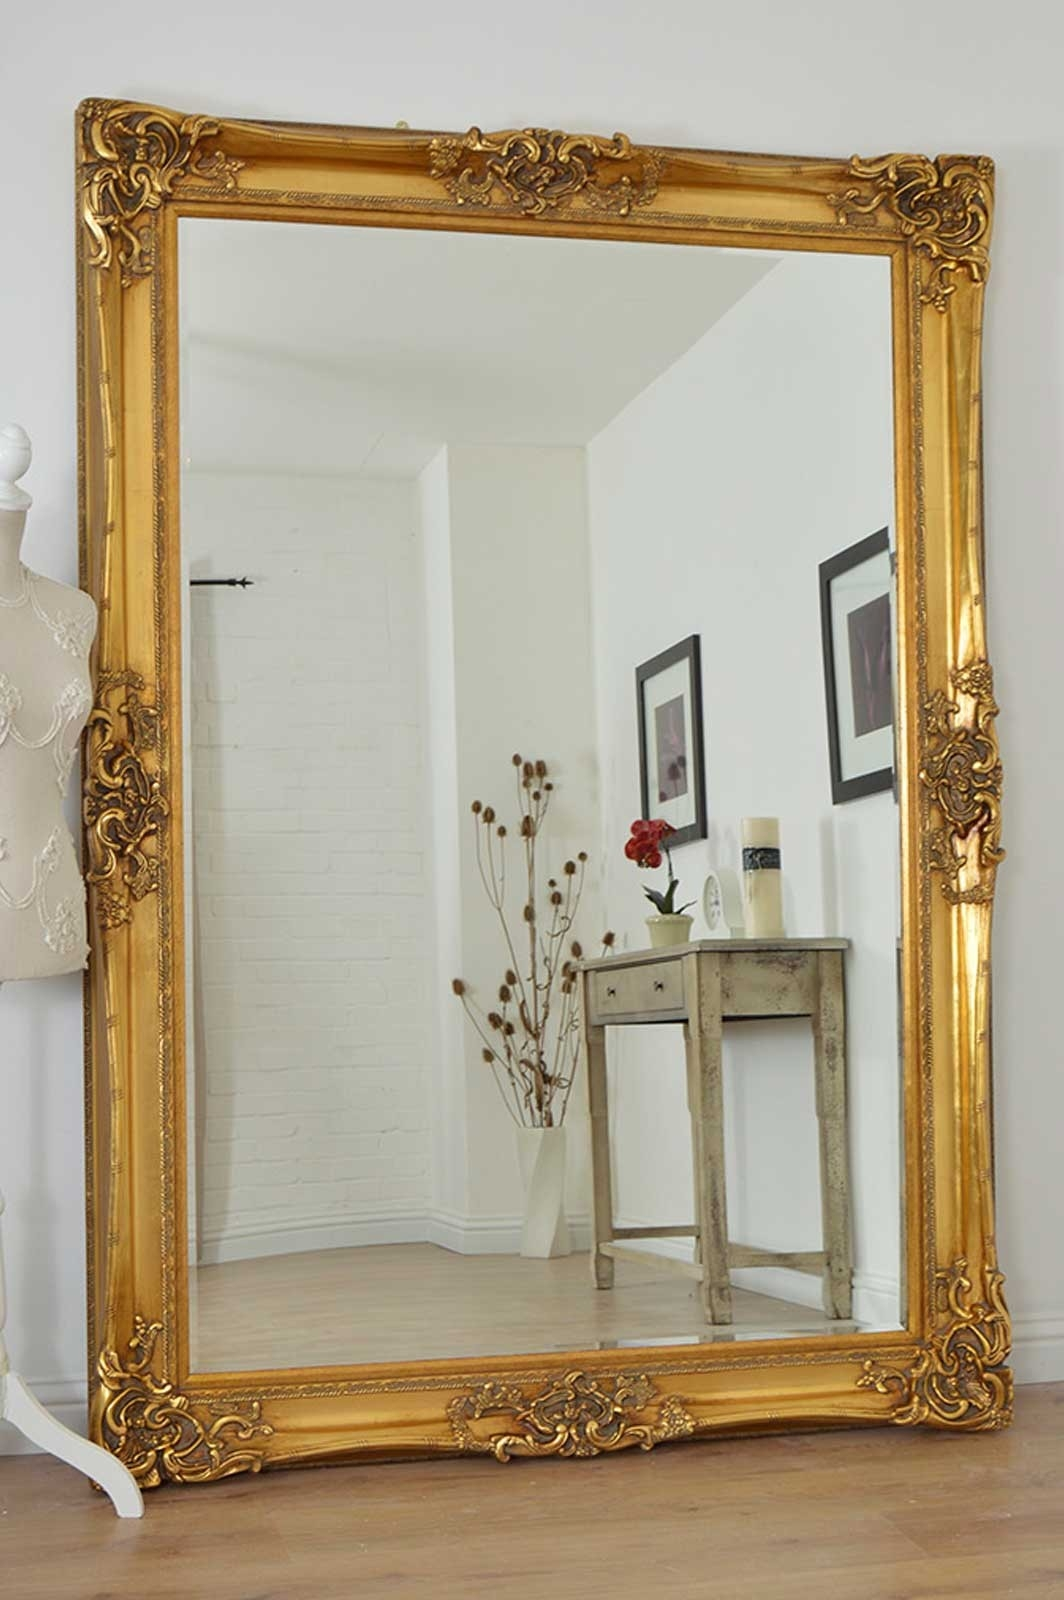 Large Gold Very Ornate Antique Design Wall Mirror 7ft X 5ft 213cm Throughout Large Antique Wall Mirrors (Image 12 of 15)